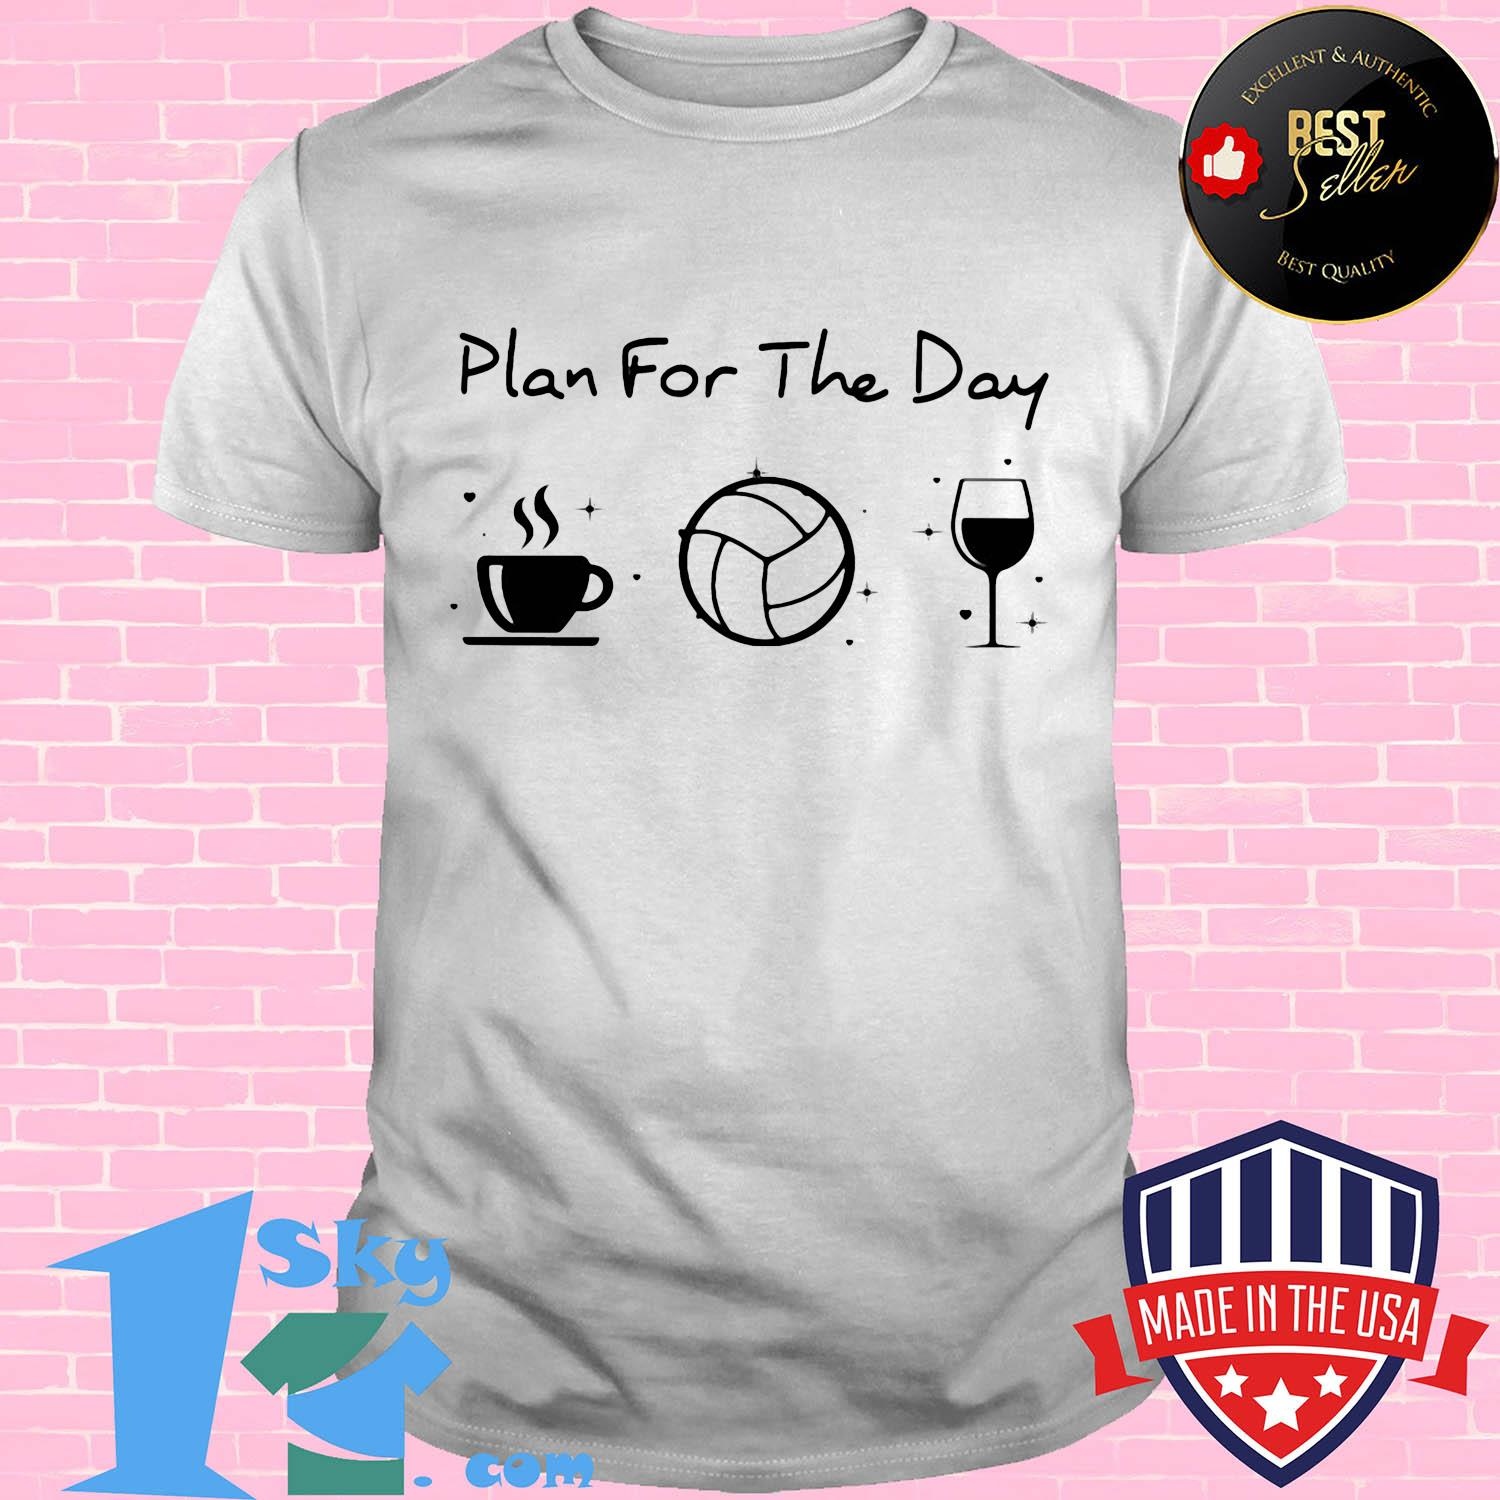 596bb5c7 plan for the day coffee volleyball wine shirt unisex - Shop trending - We offer all trend shirts - 1SkyTee